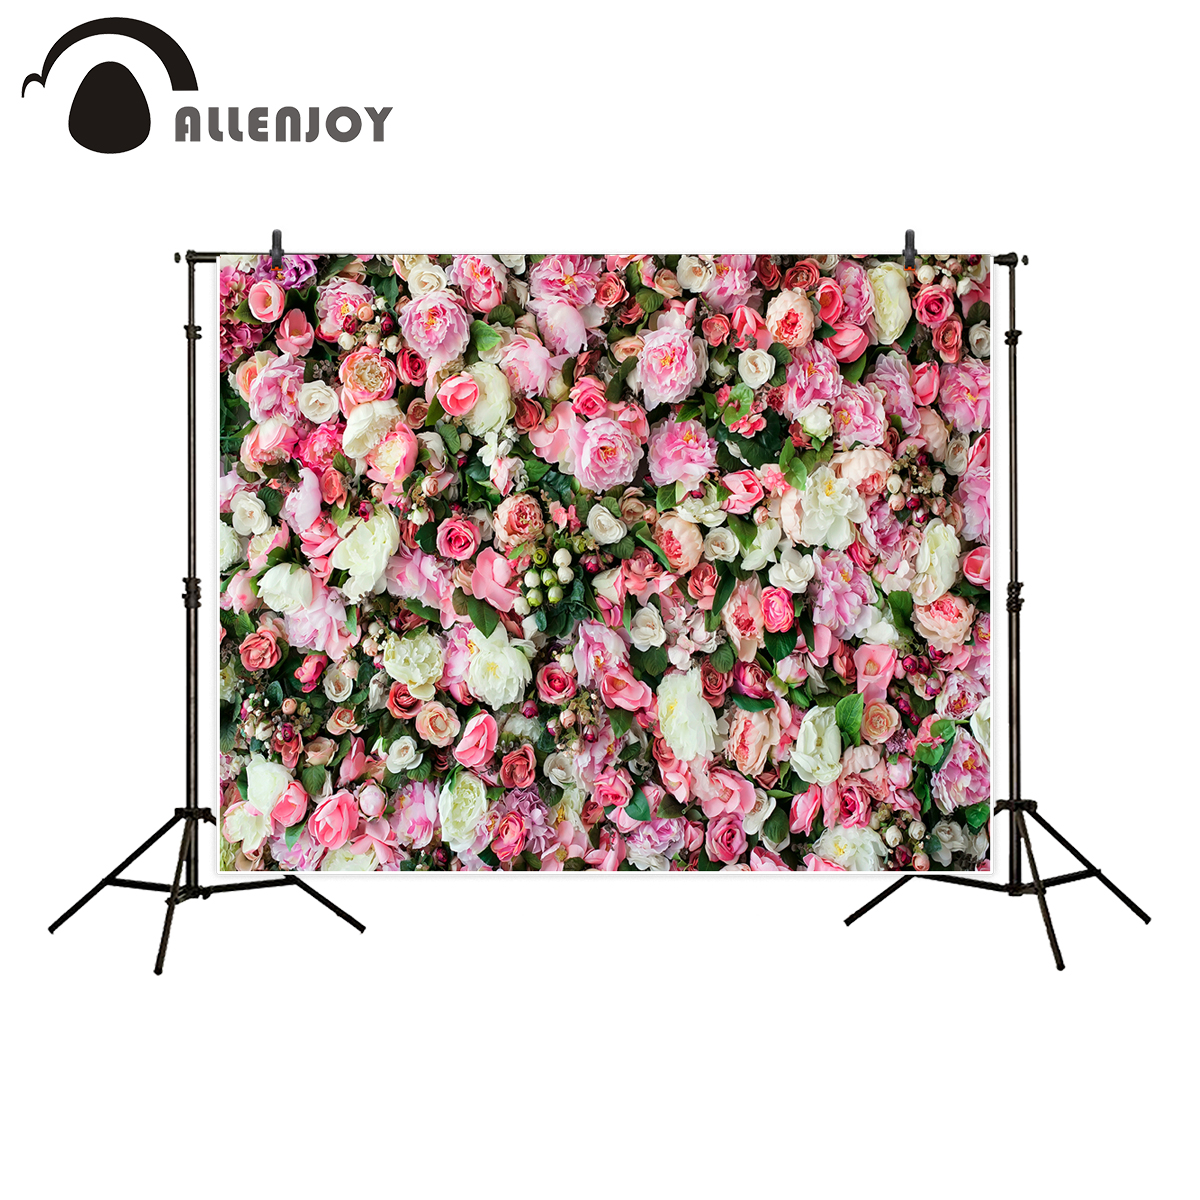 Allenjoy photographic background colorful flower wall wedding decoration backdrop photobooth photo studio professional